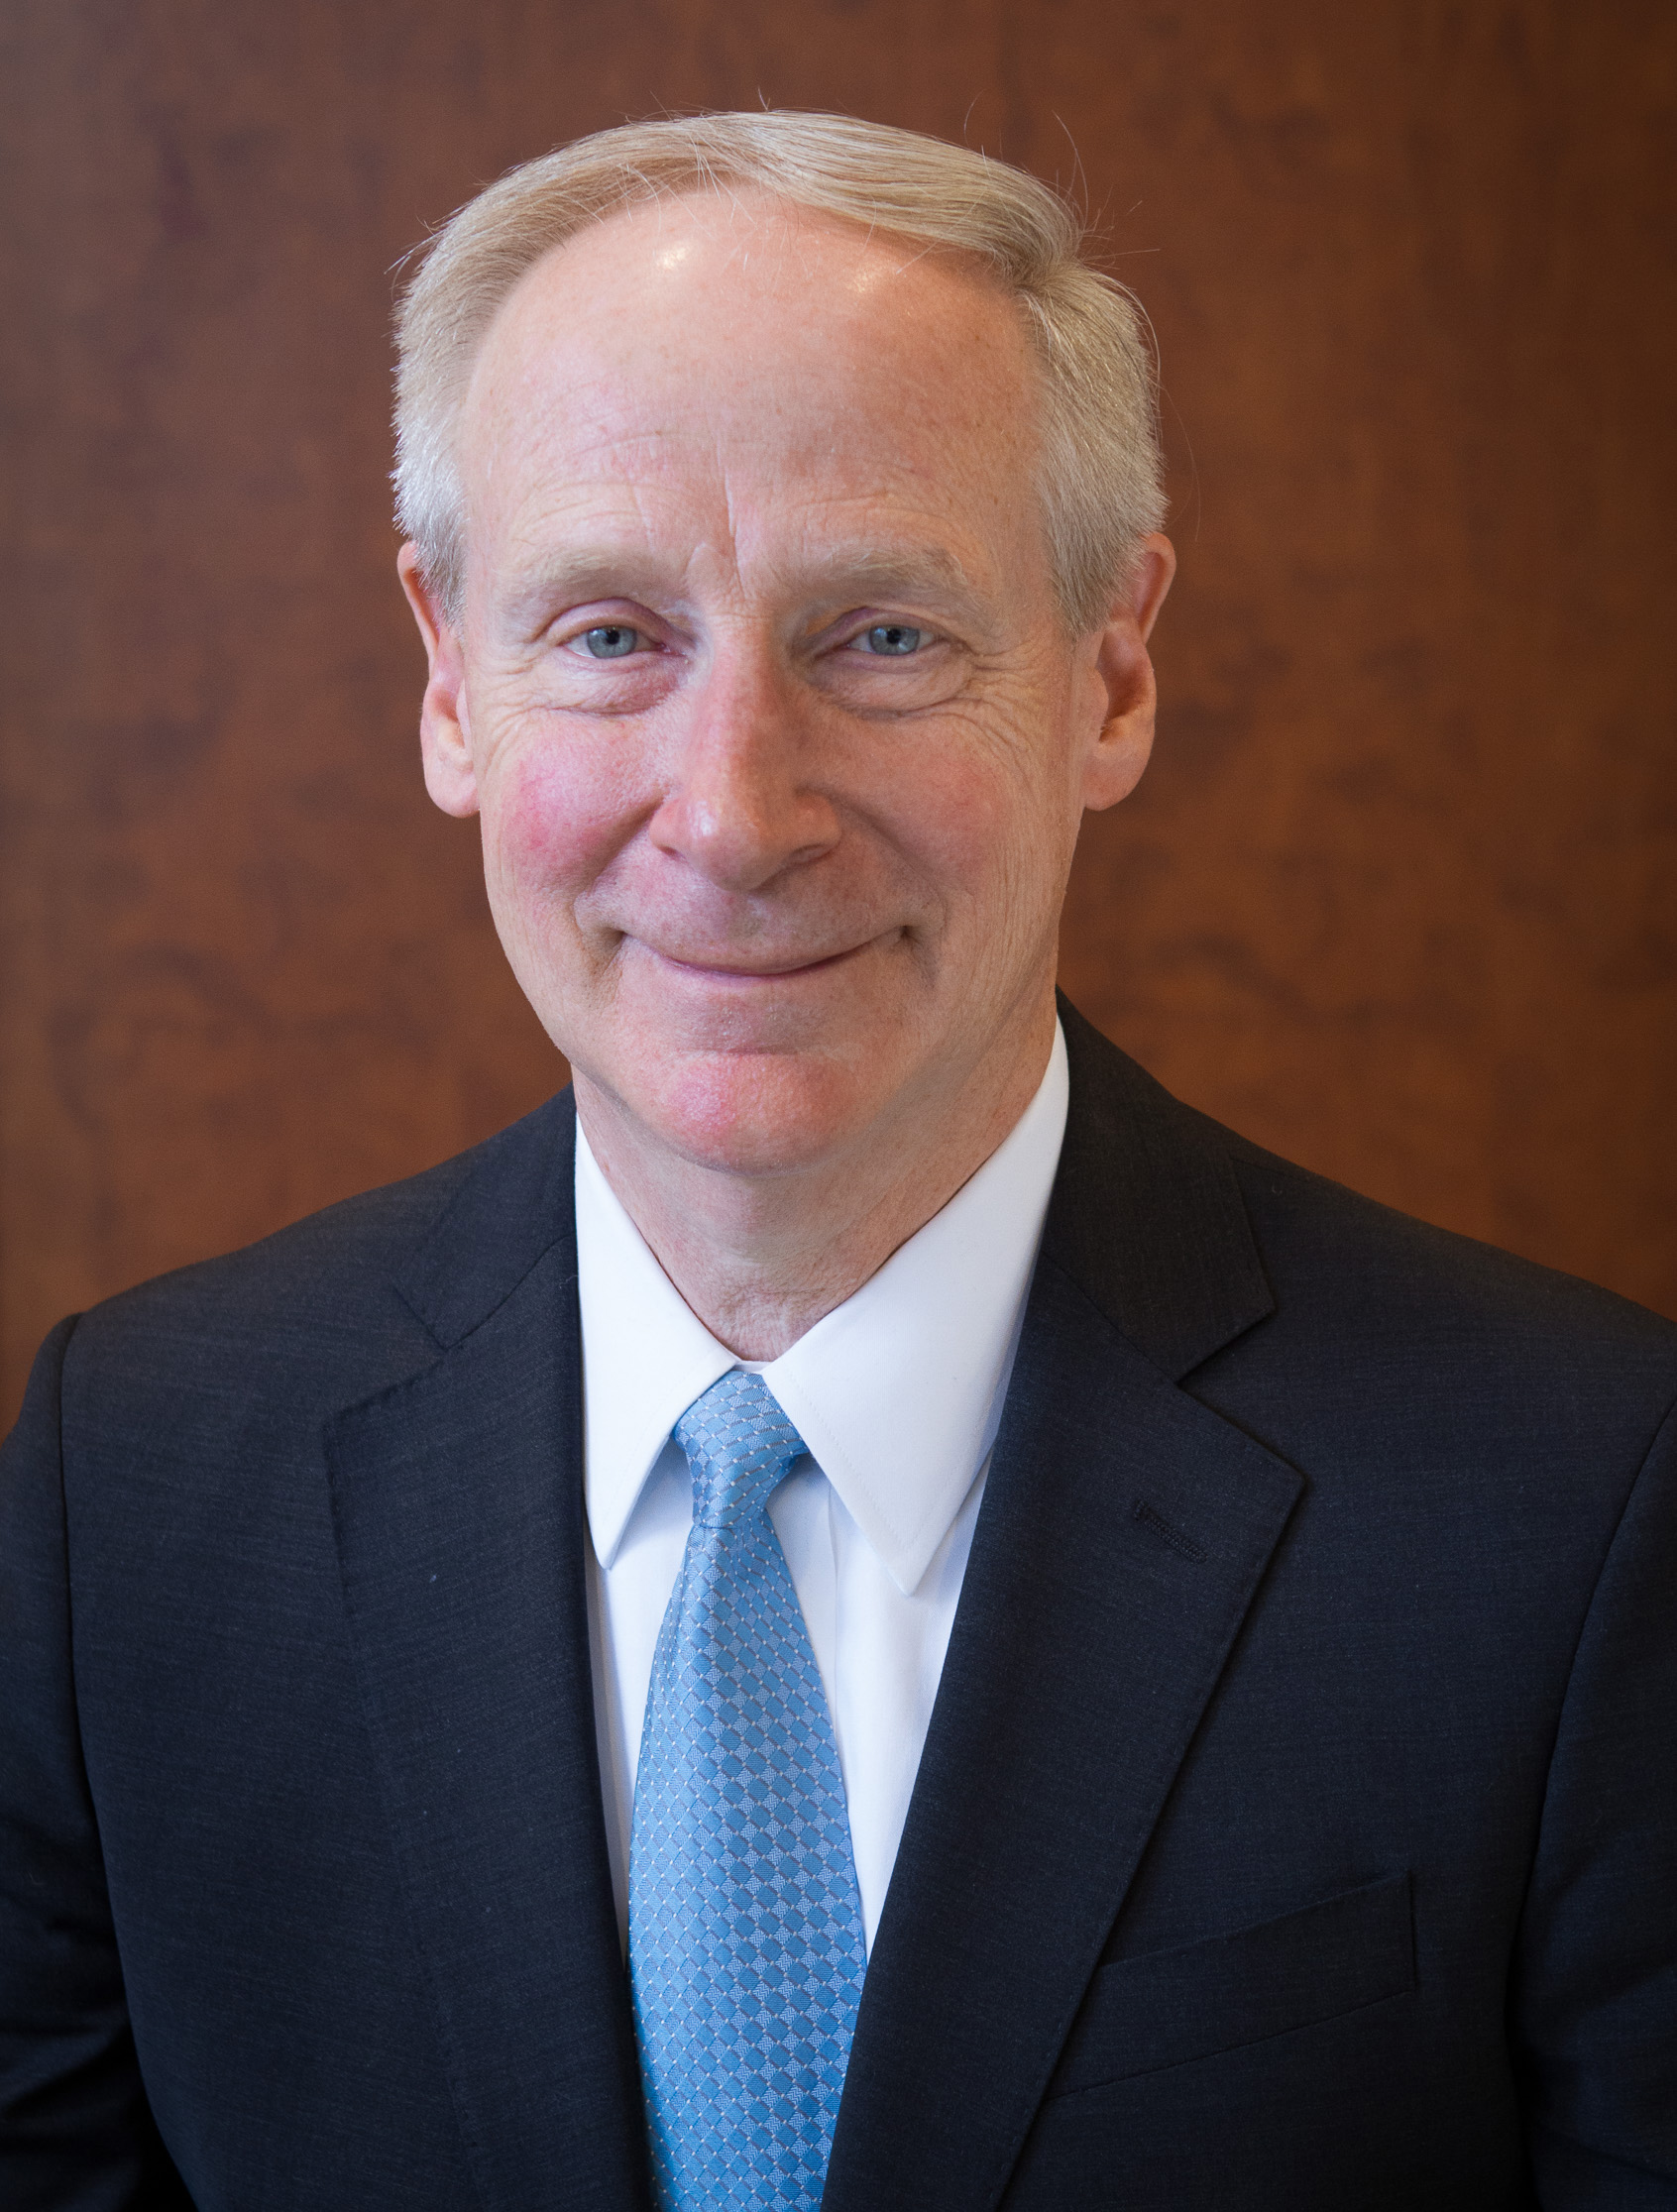 Bob Boisture, Fetzer Institute President and CEO headshot in suit coat and tie